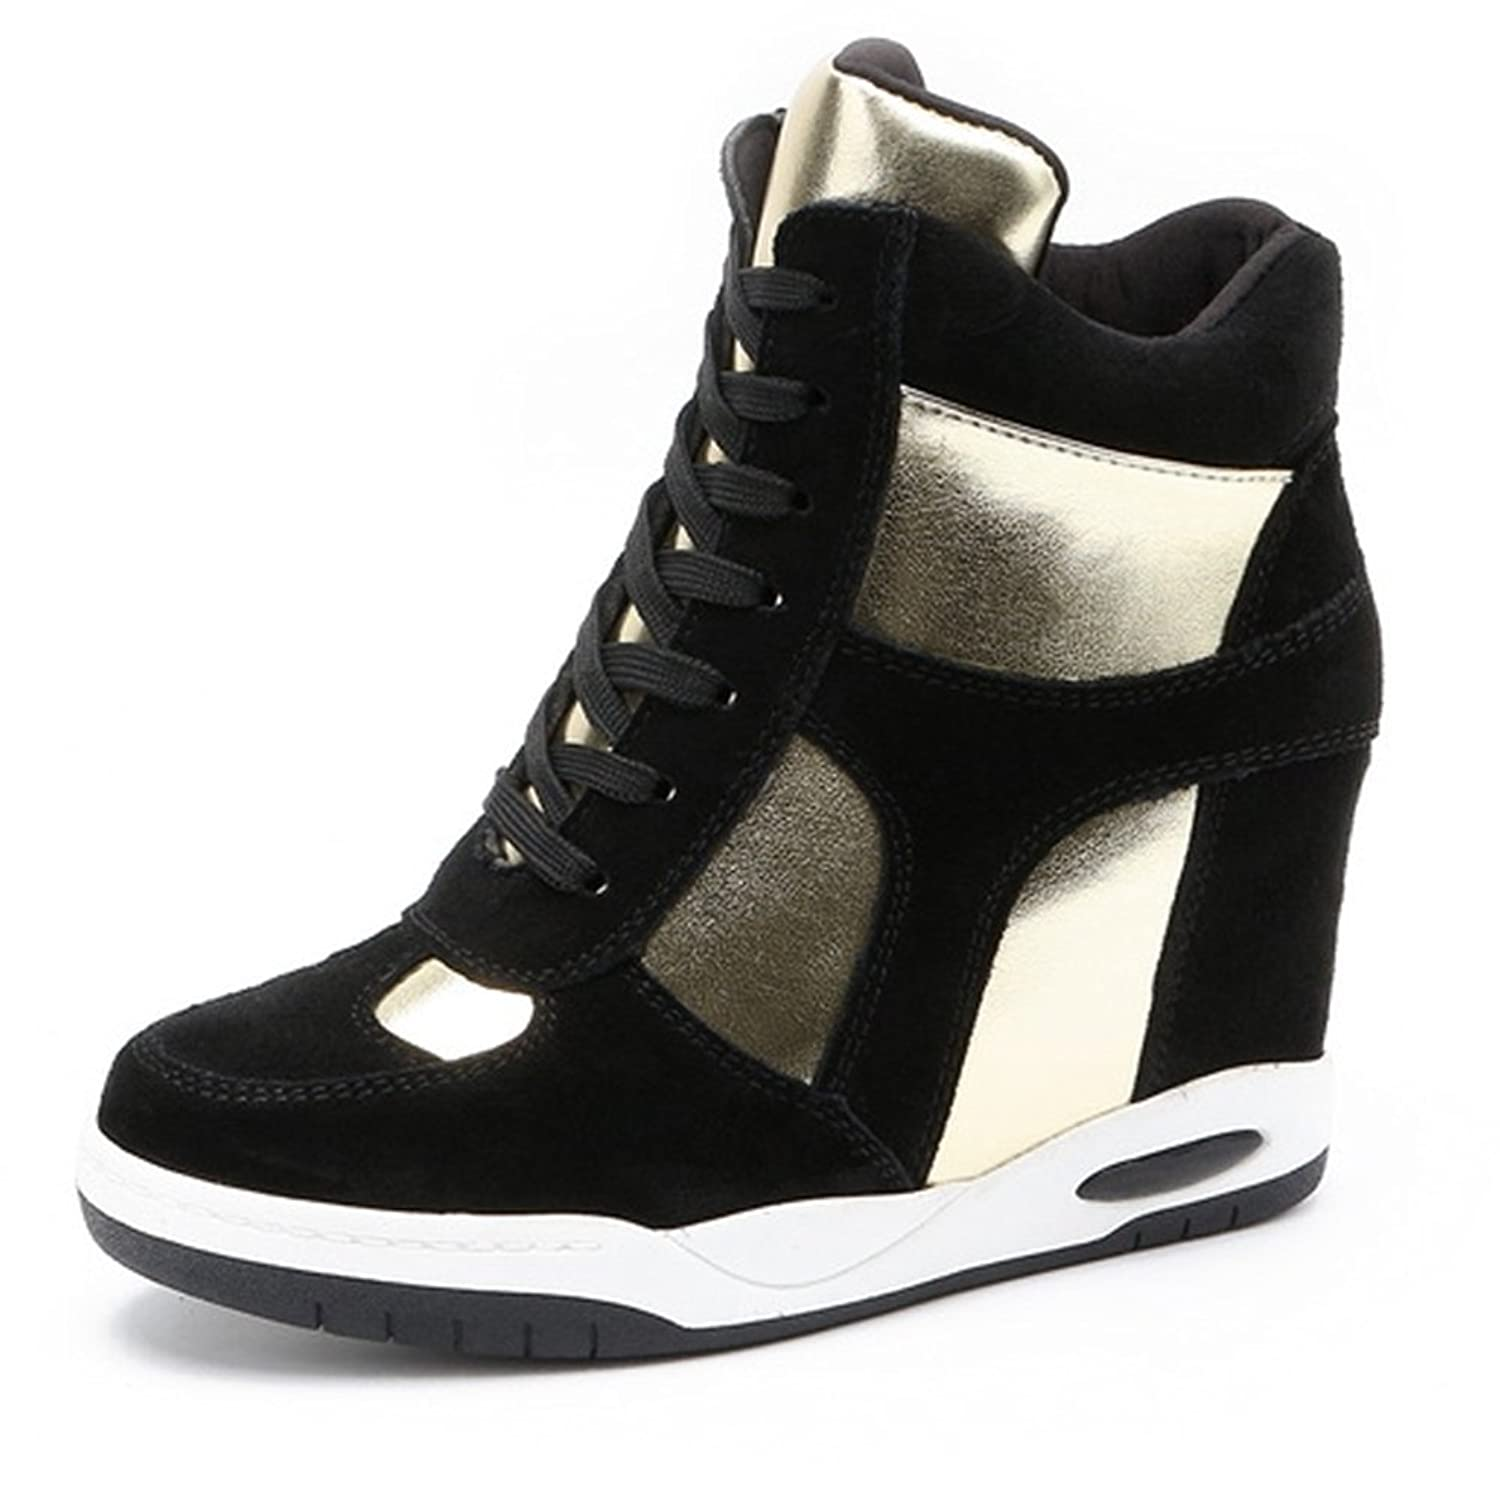 High Top Wedge Sneakers for Women's - Anti-slip Rubber Sole Hidden Heel Round Toe Platform Casual Shoes new